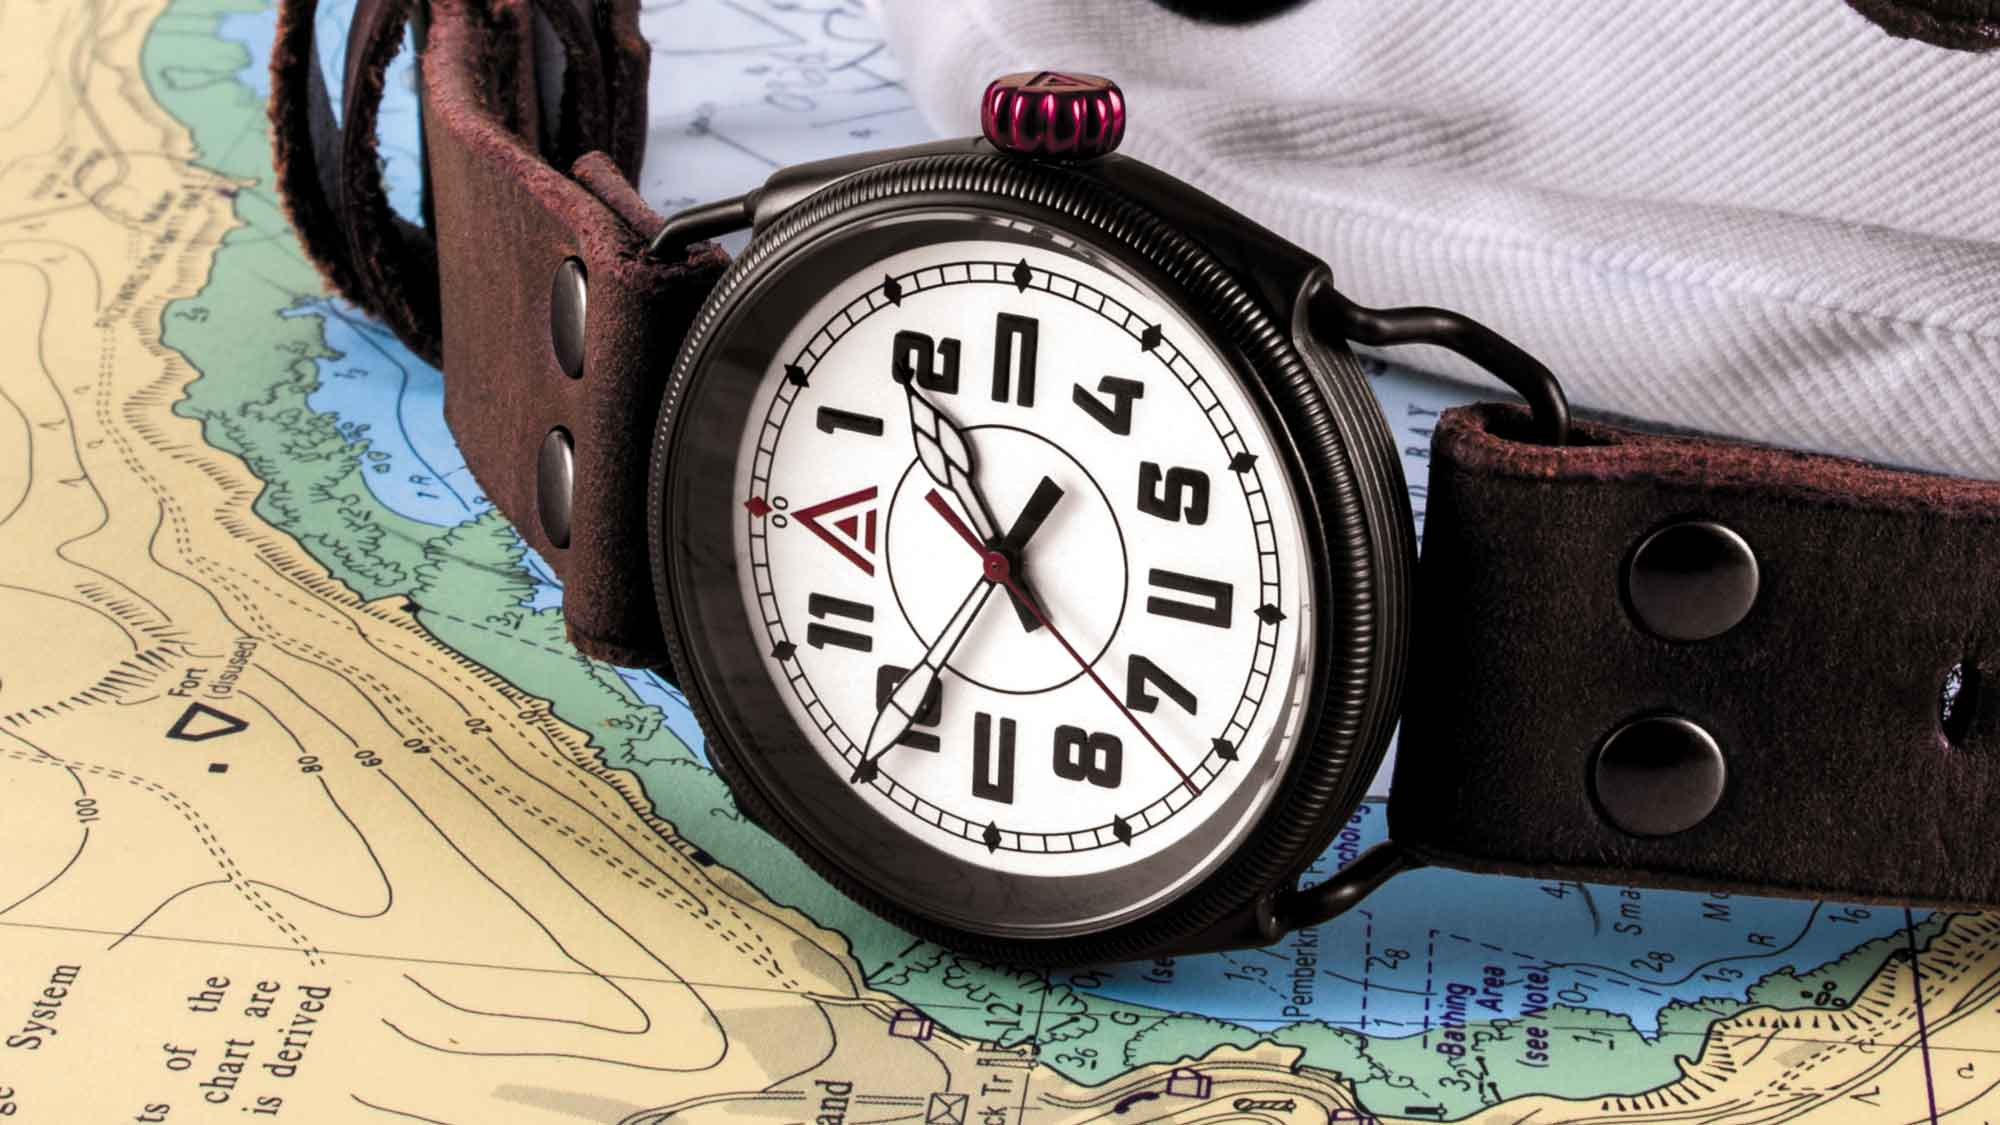 ww1 style watch no 1914 white wt author